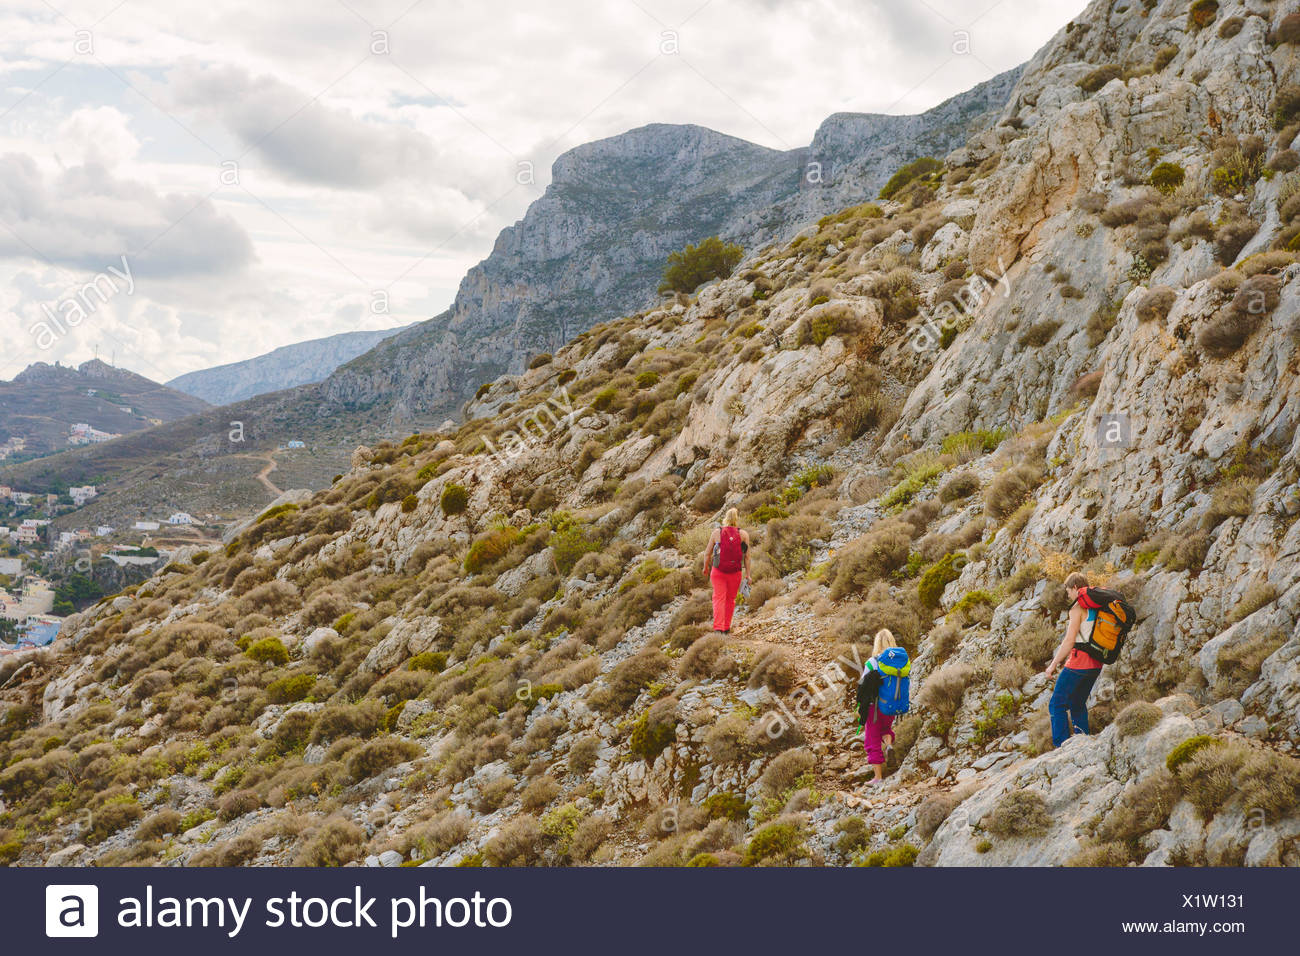 Greece, Dodecanese, Kalymnos, Hikers on mountainside - Stock Image